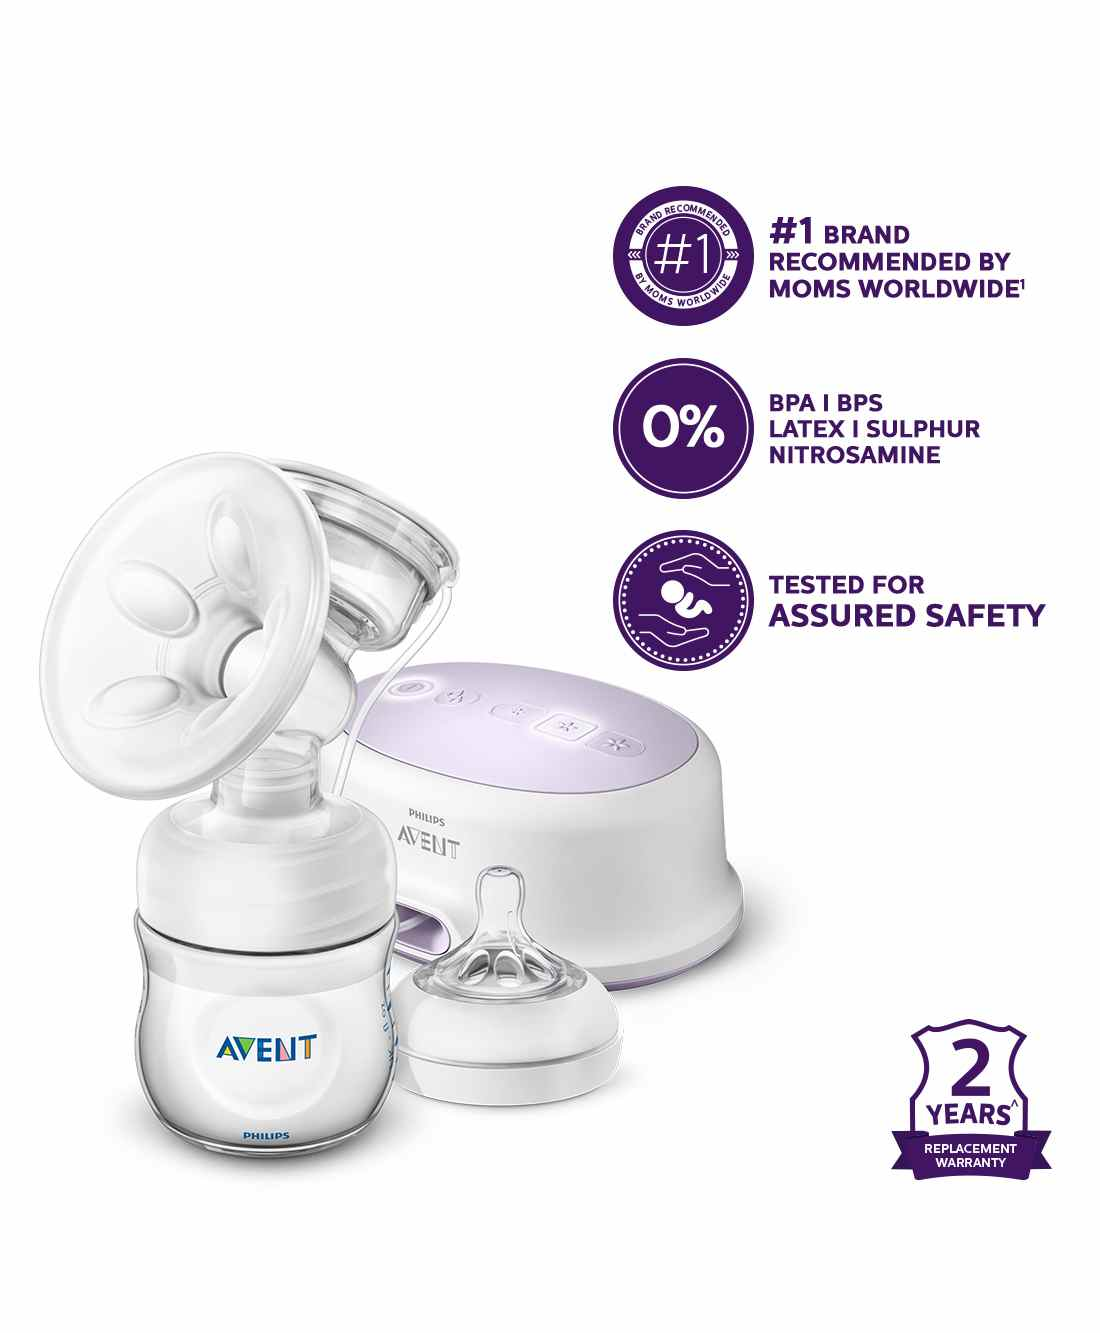 Philips Avent Baby Kids Products Online Shopping Store In India New Natural Skin Soft Nipple 2 Pack Medium Flow 3m Single Electric Breast Pump With Pp Storage Cup Scf332